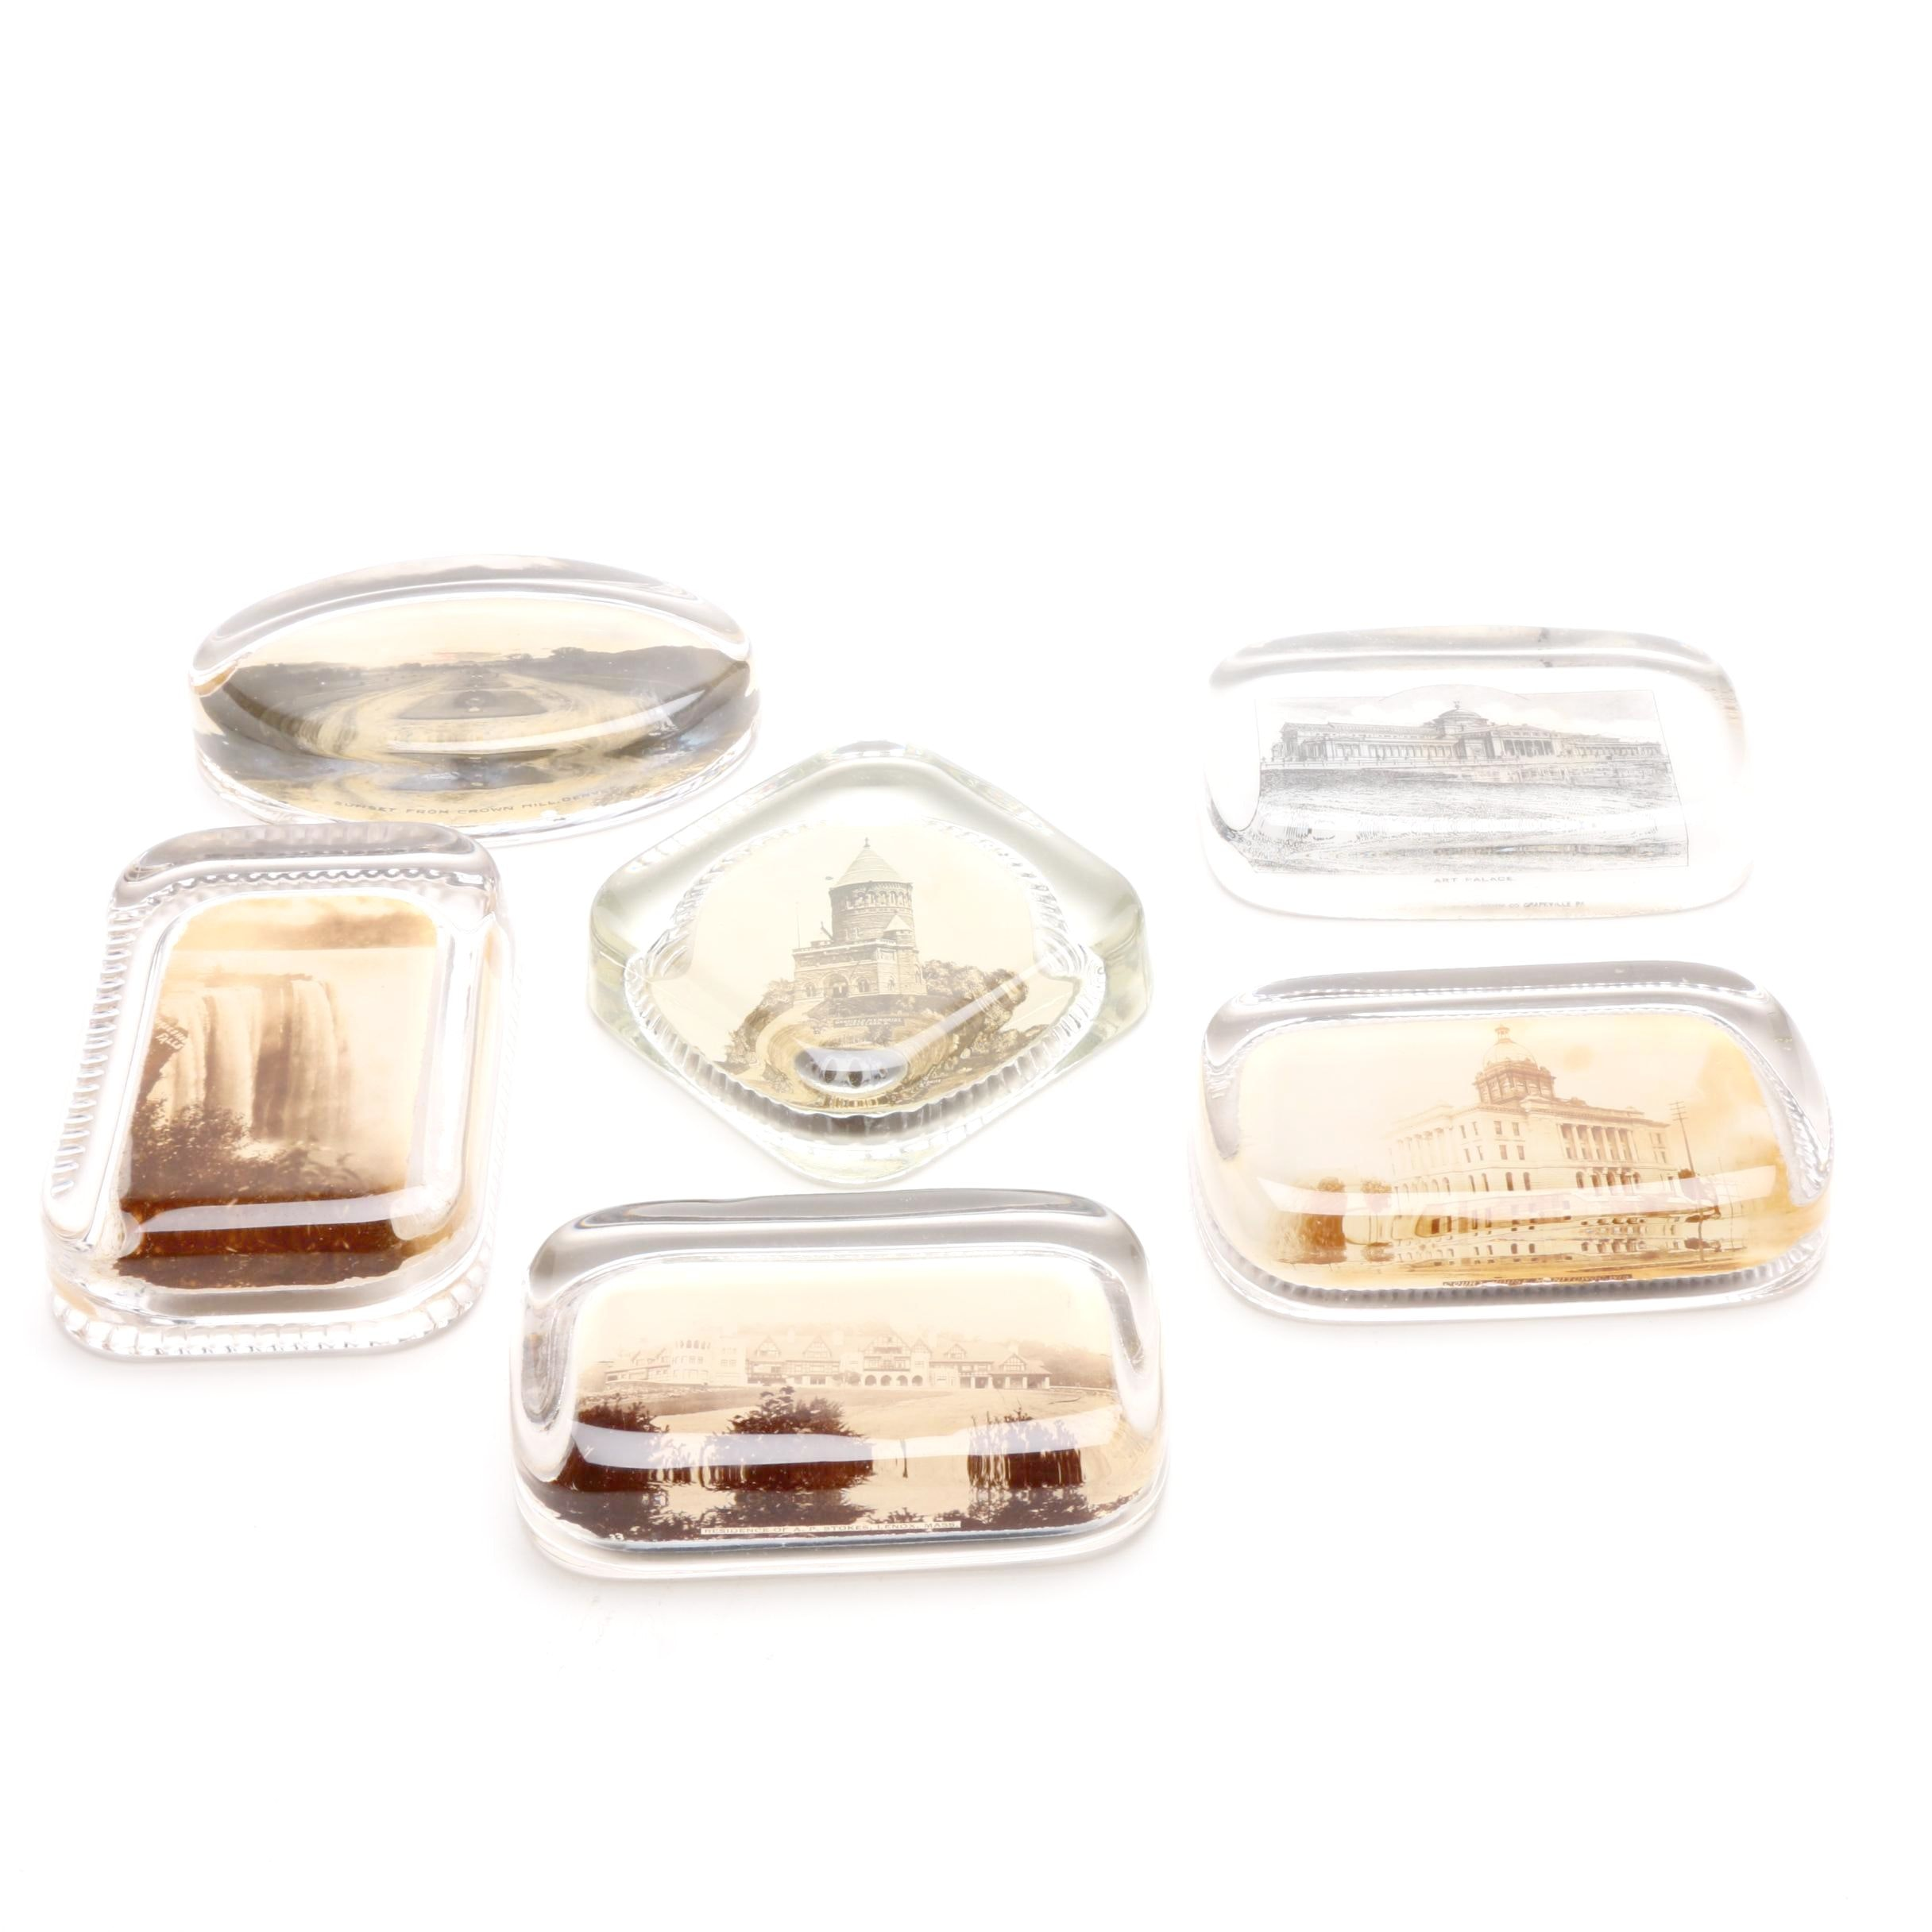 Six Photographic Souvenir Glass Paperweights